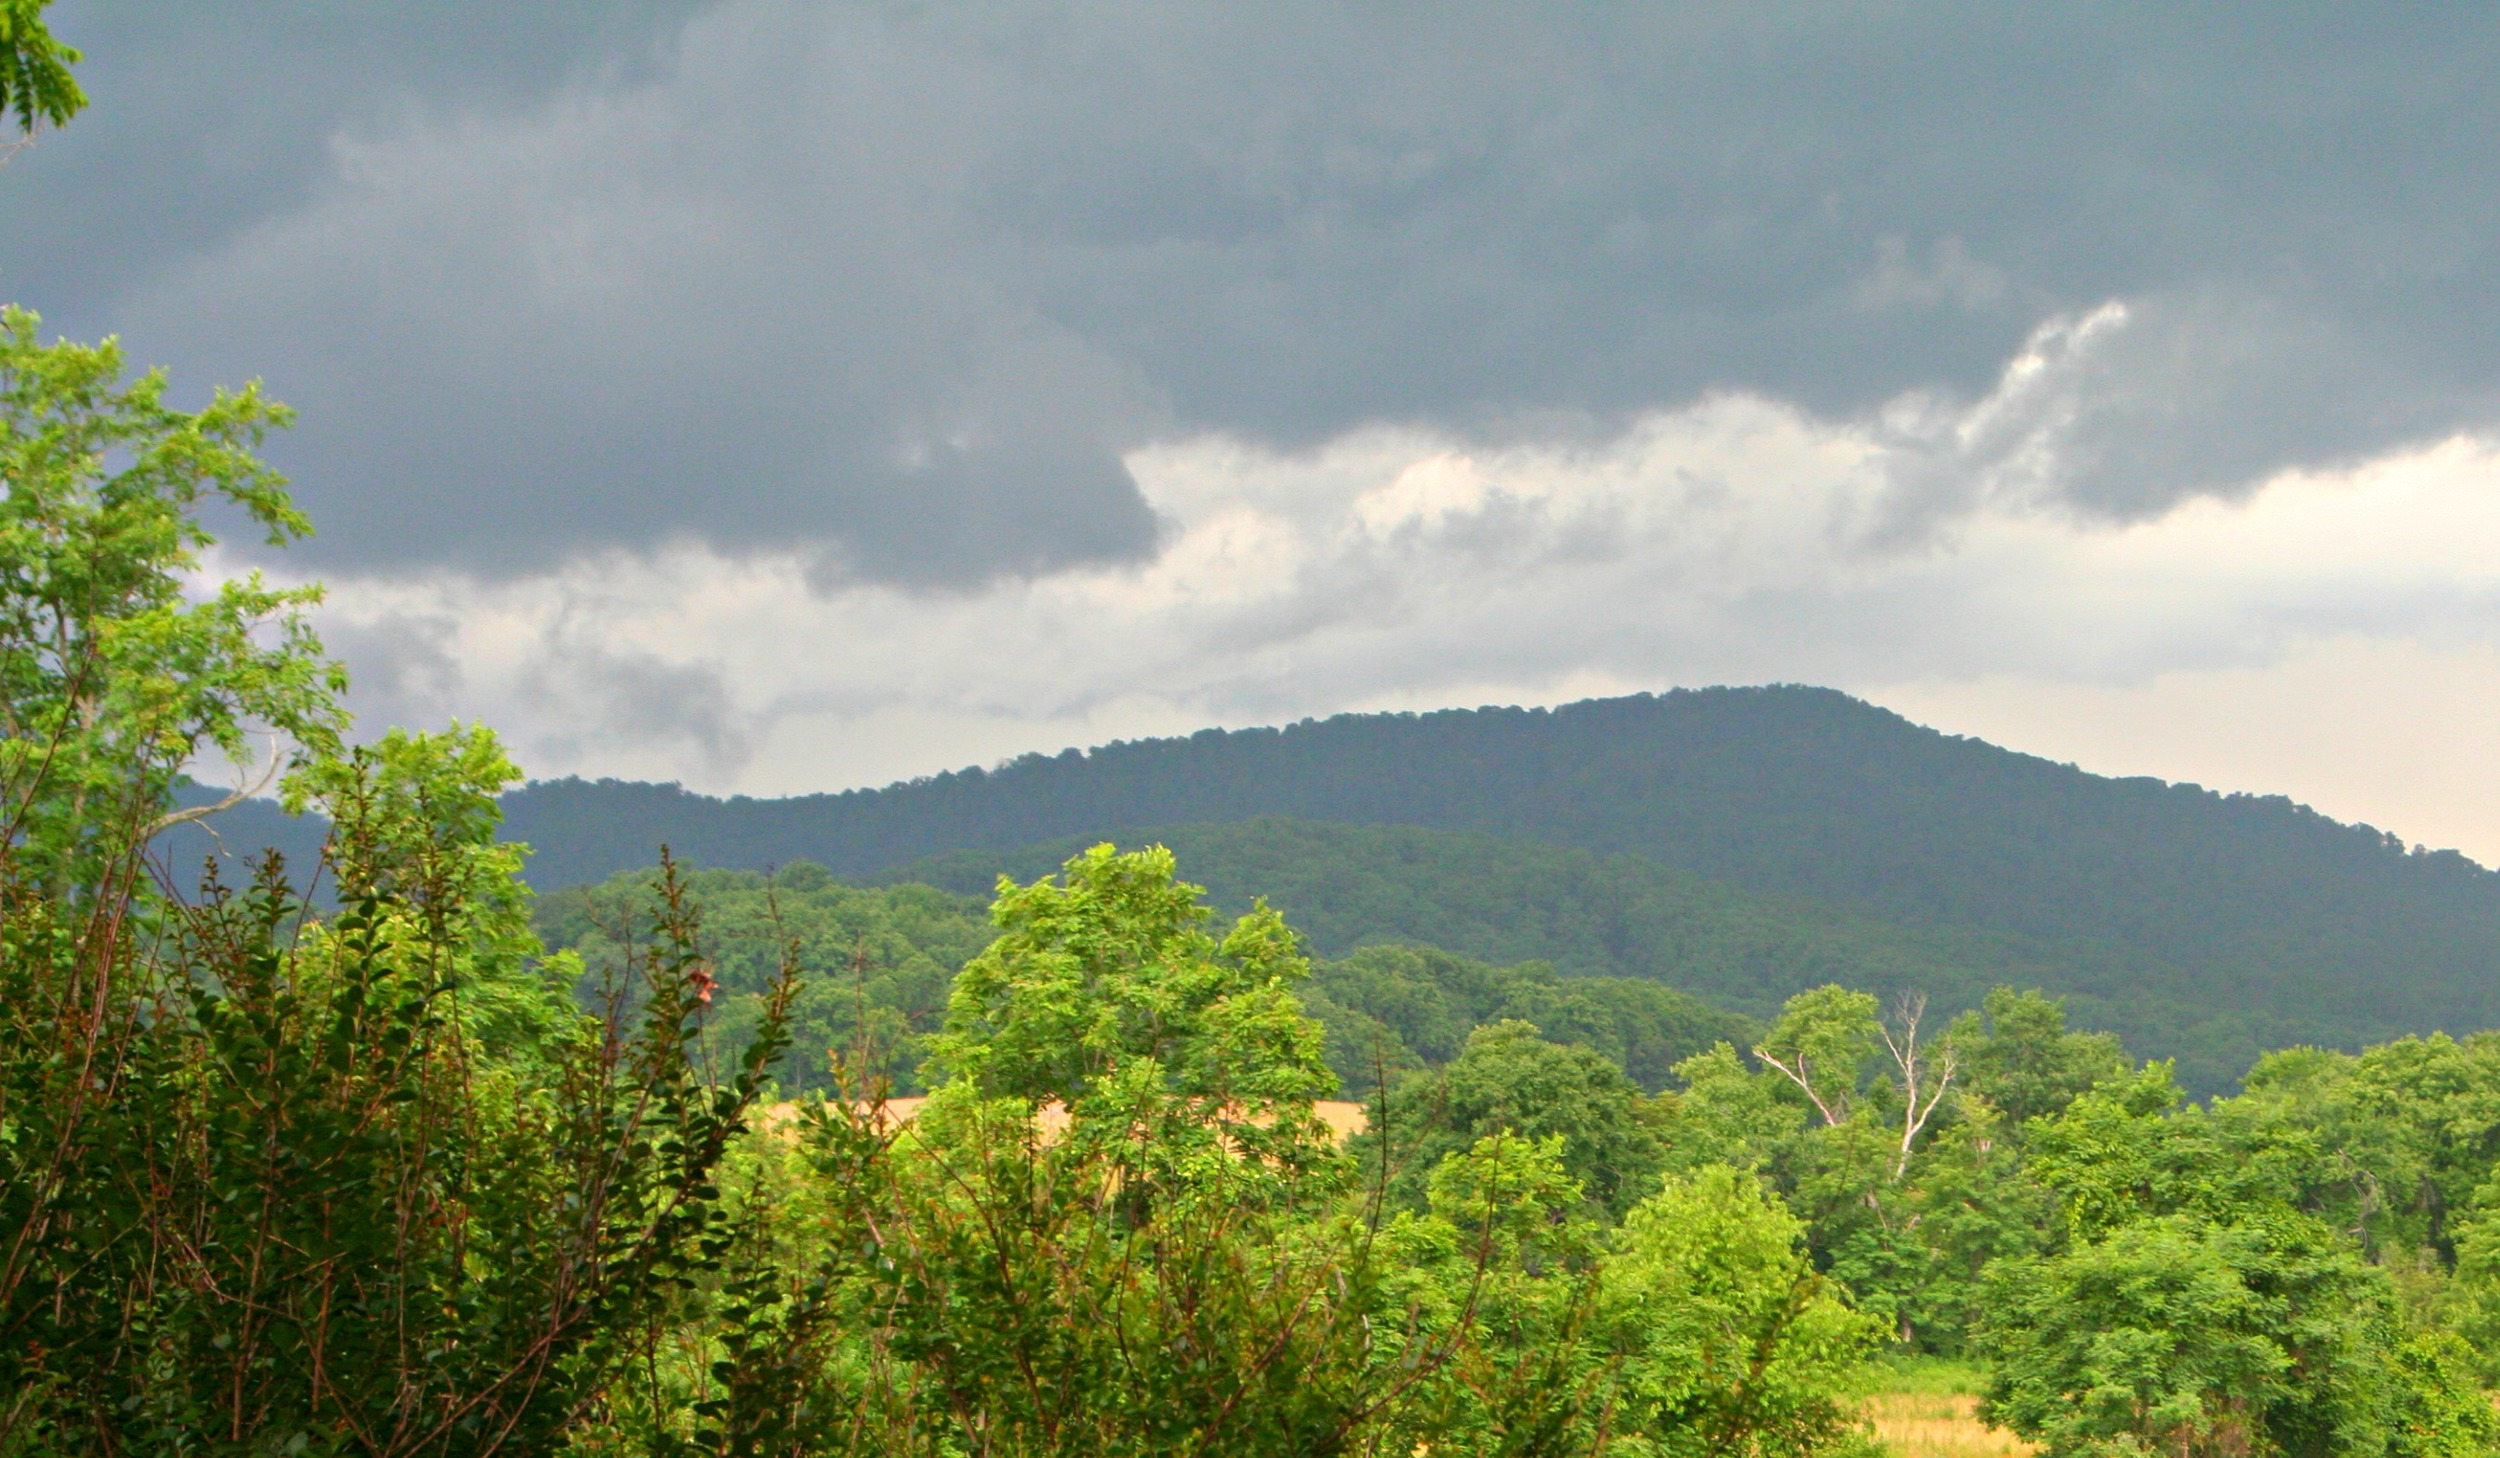 Hurricane remnants coming over Afton Mountain